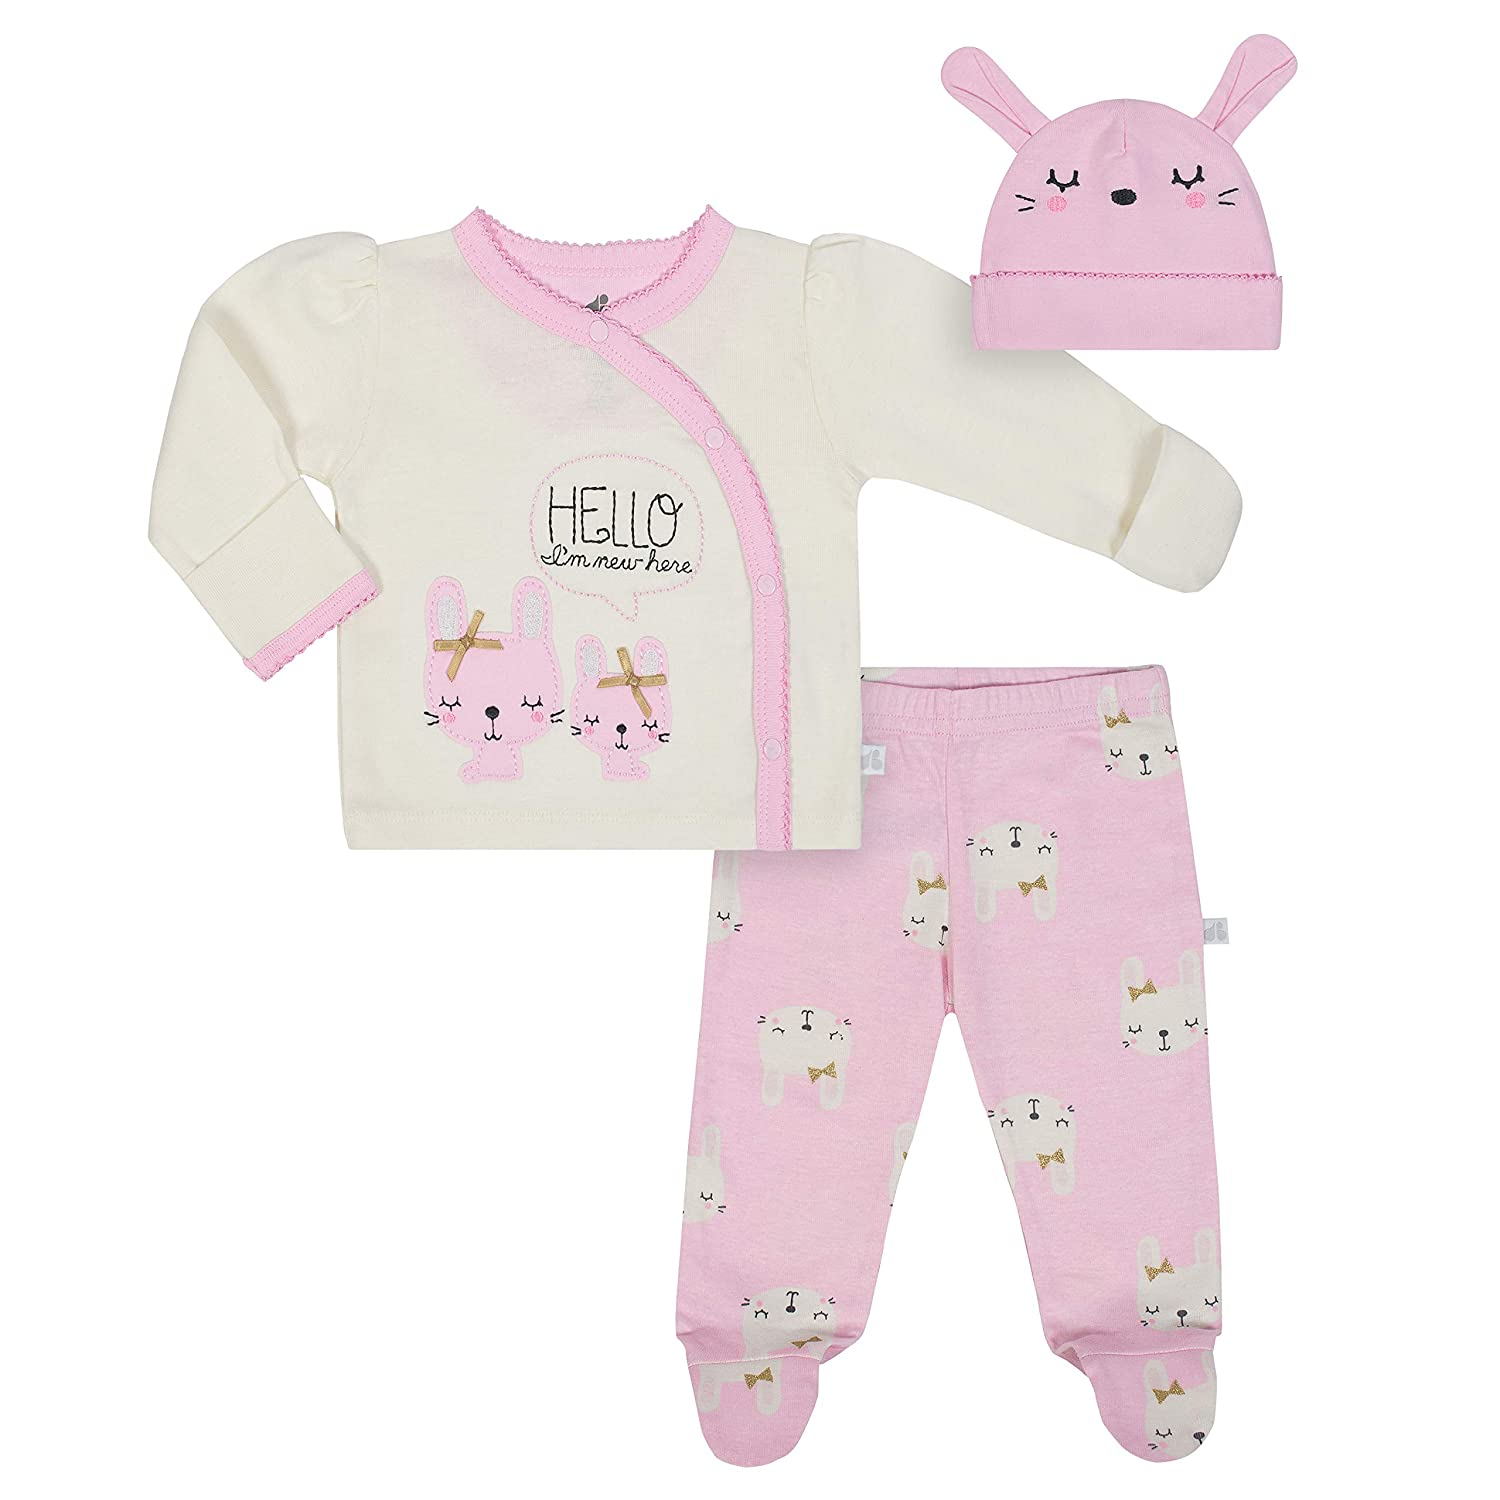 JUST BORN Baby Girls' 3-Piece Organic Take Me Home Outfit